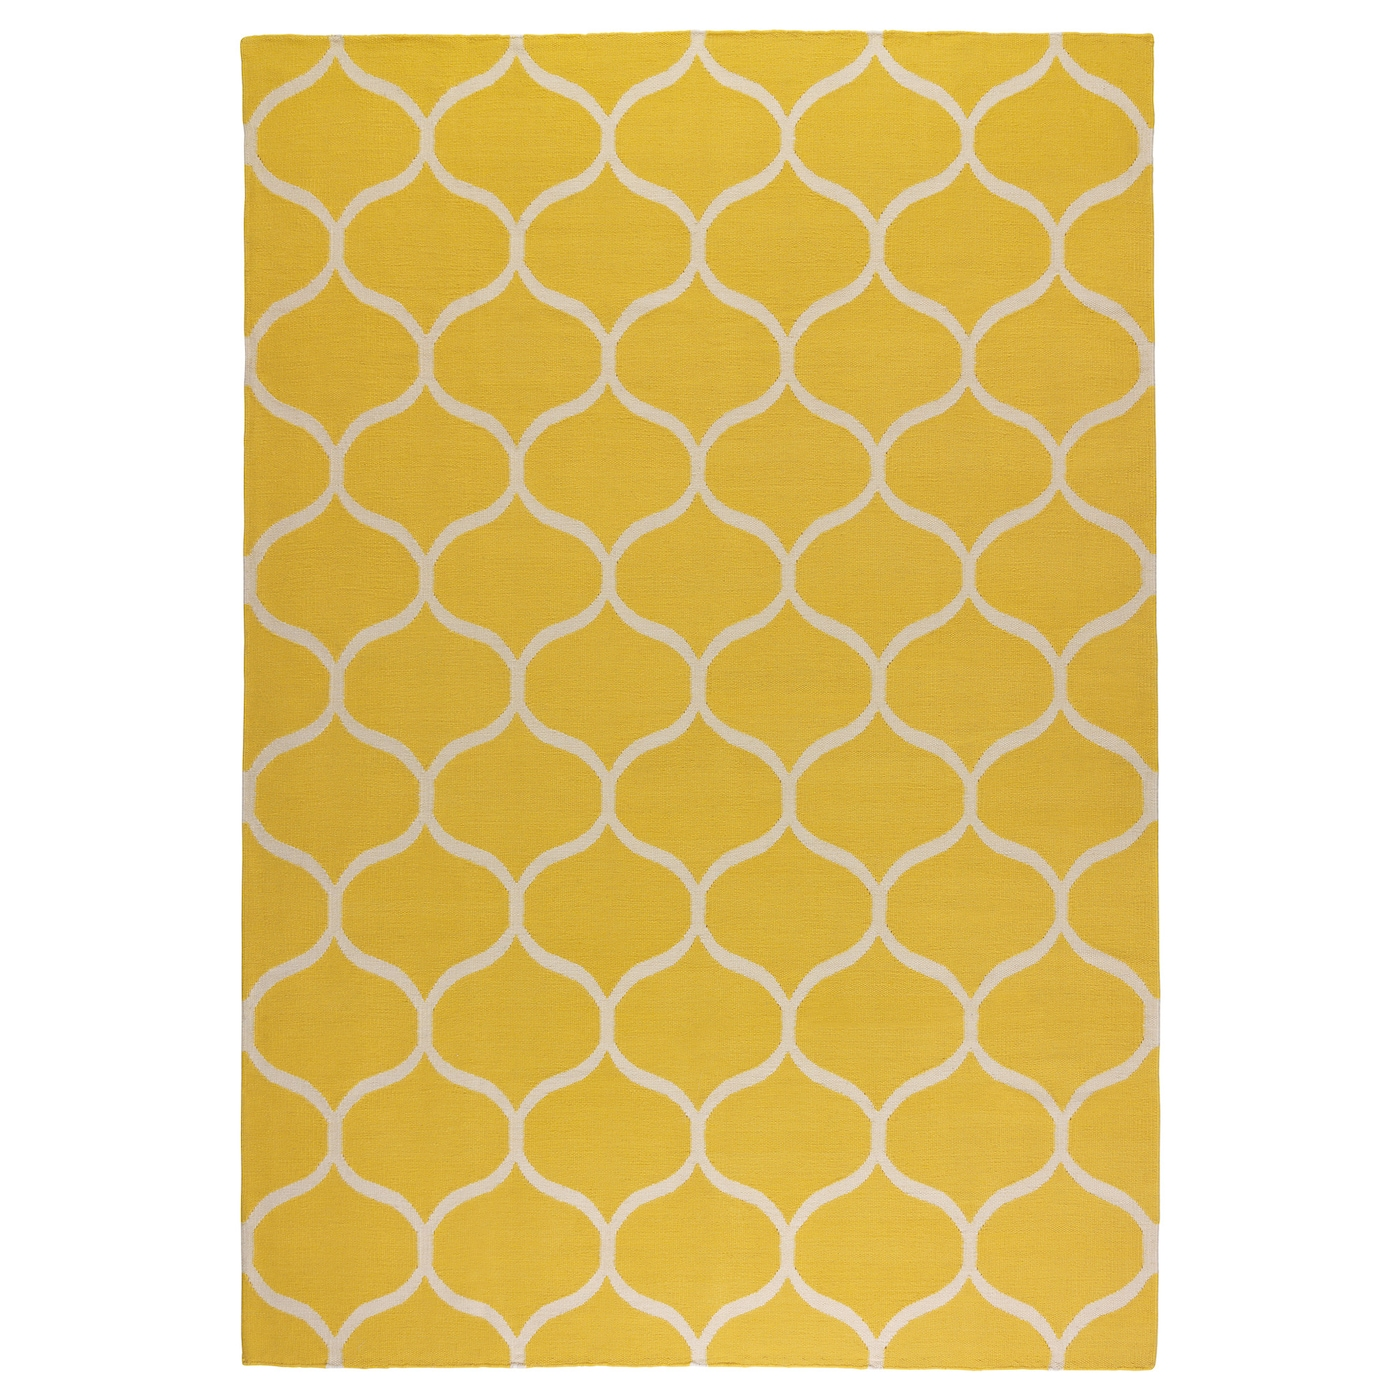 Stockholm rug flatwoven handmade net pattern yellow for Ikea rugs